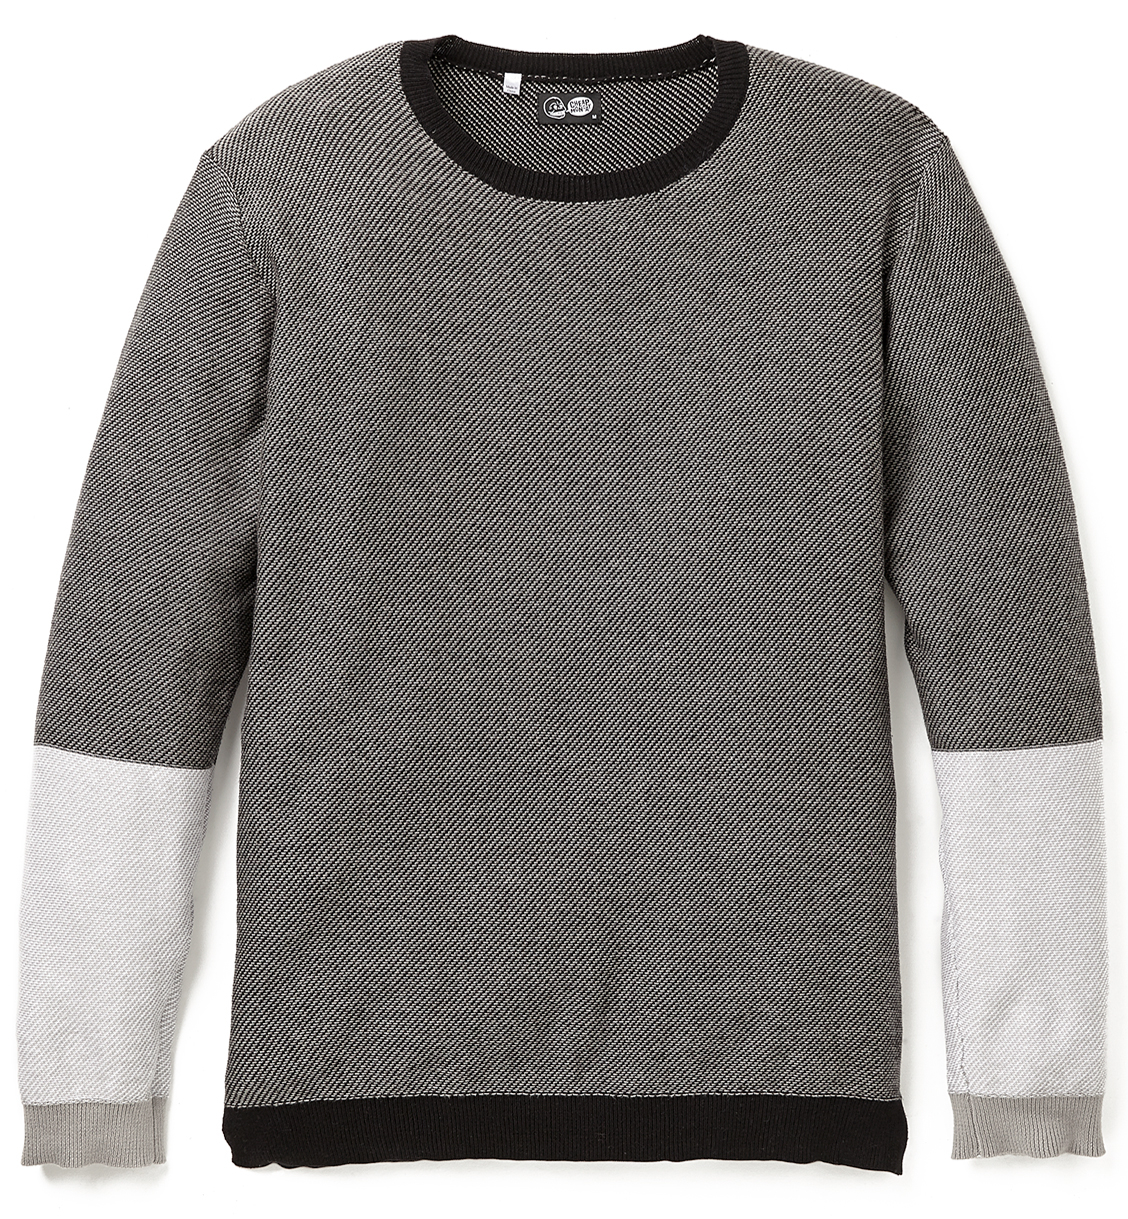 5 Color Block Sweaters for Fall